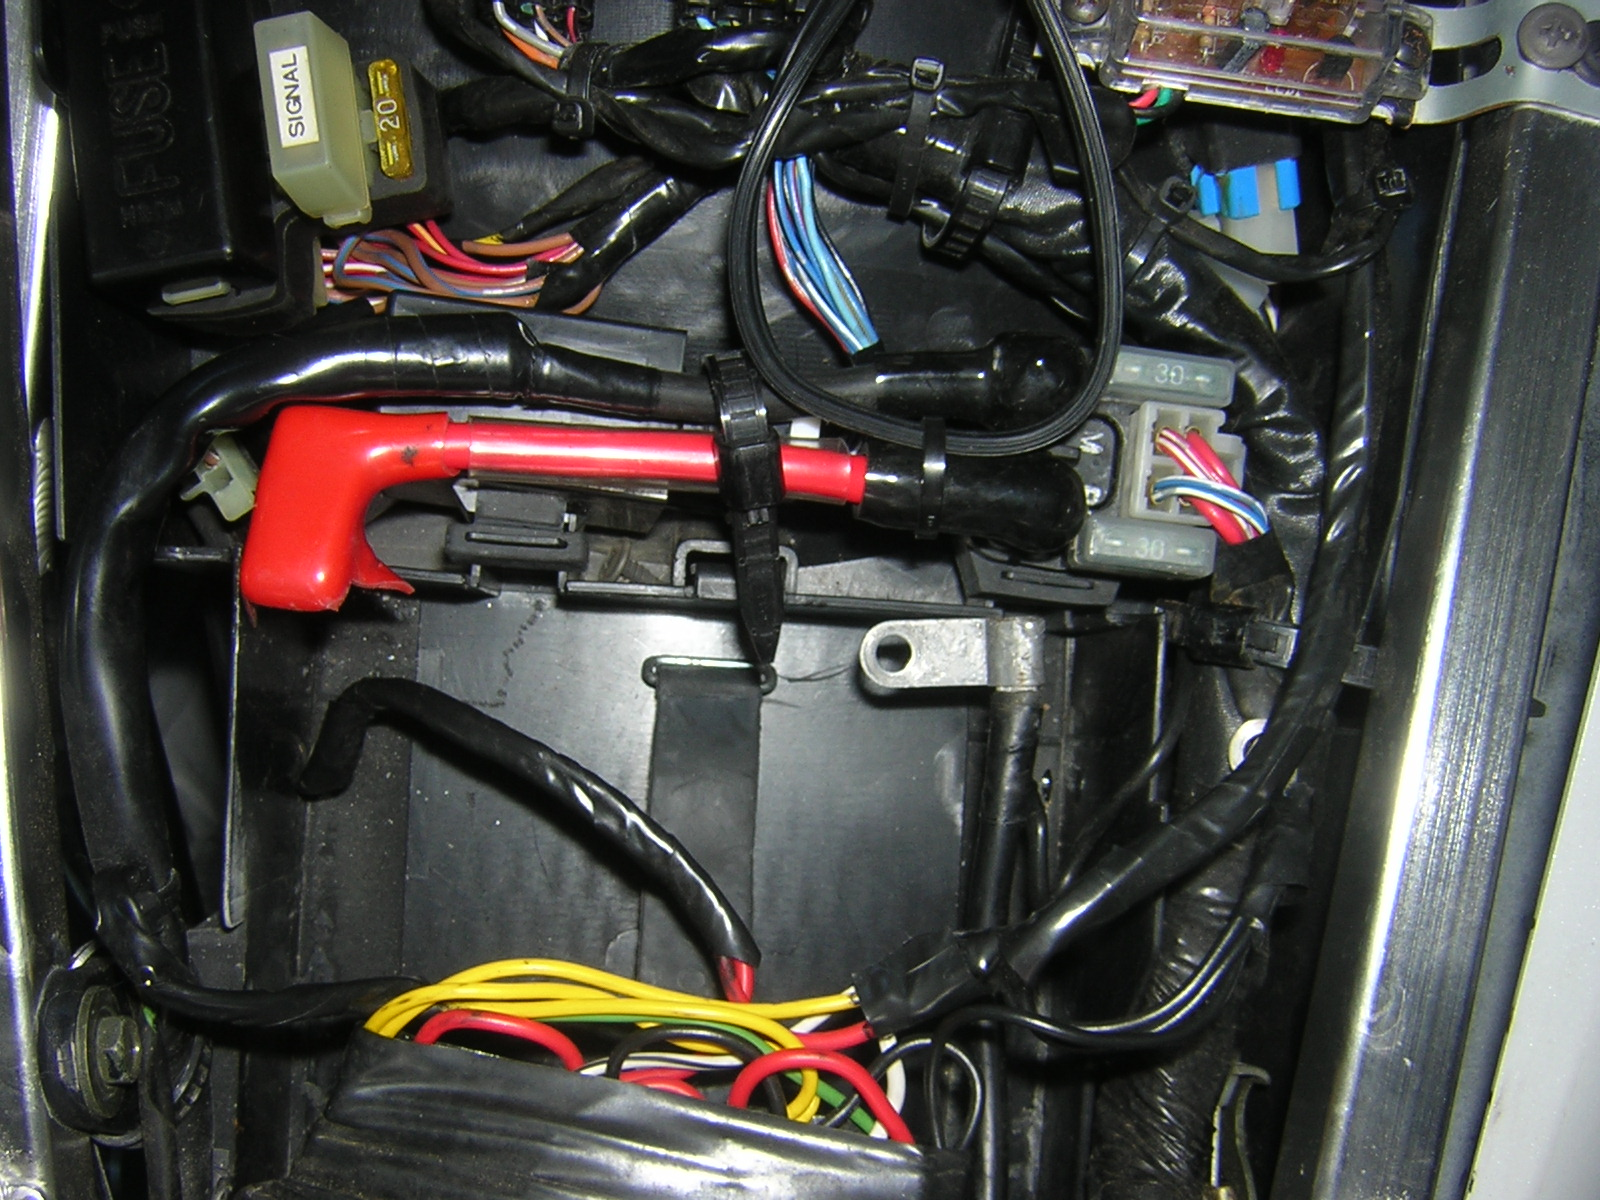 2007 Yamaha R6 Fuse Box Location : R fuse box location wiring diagram images